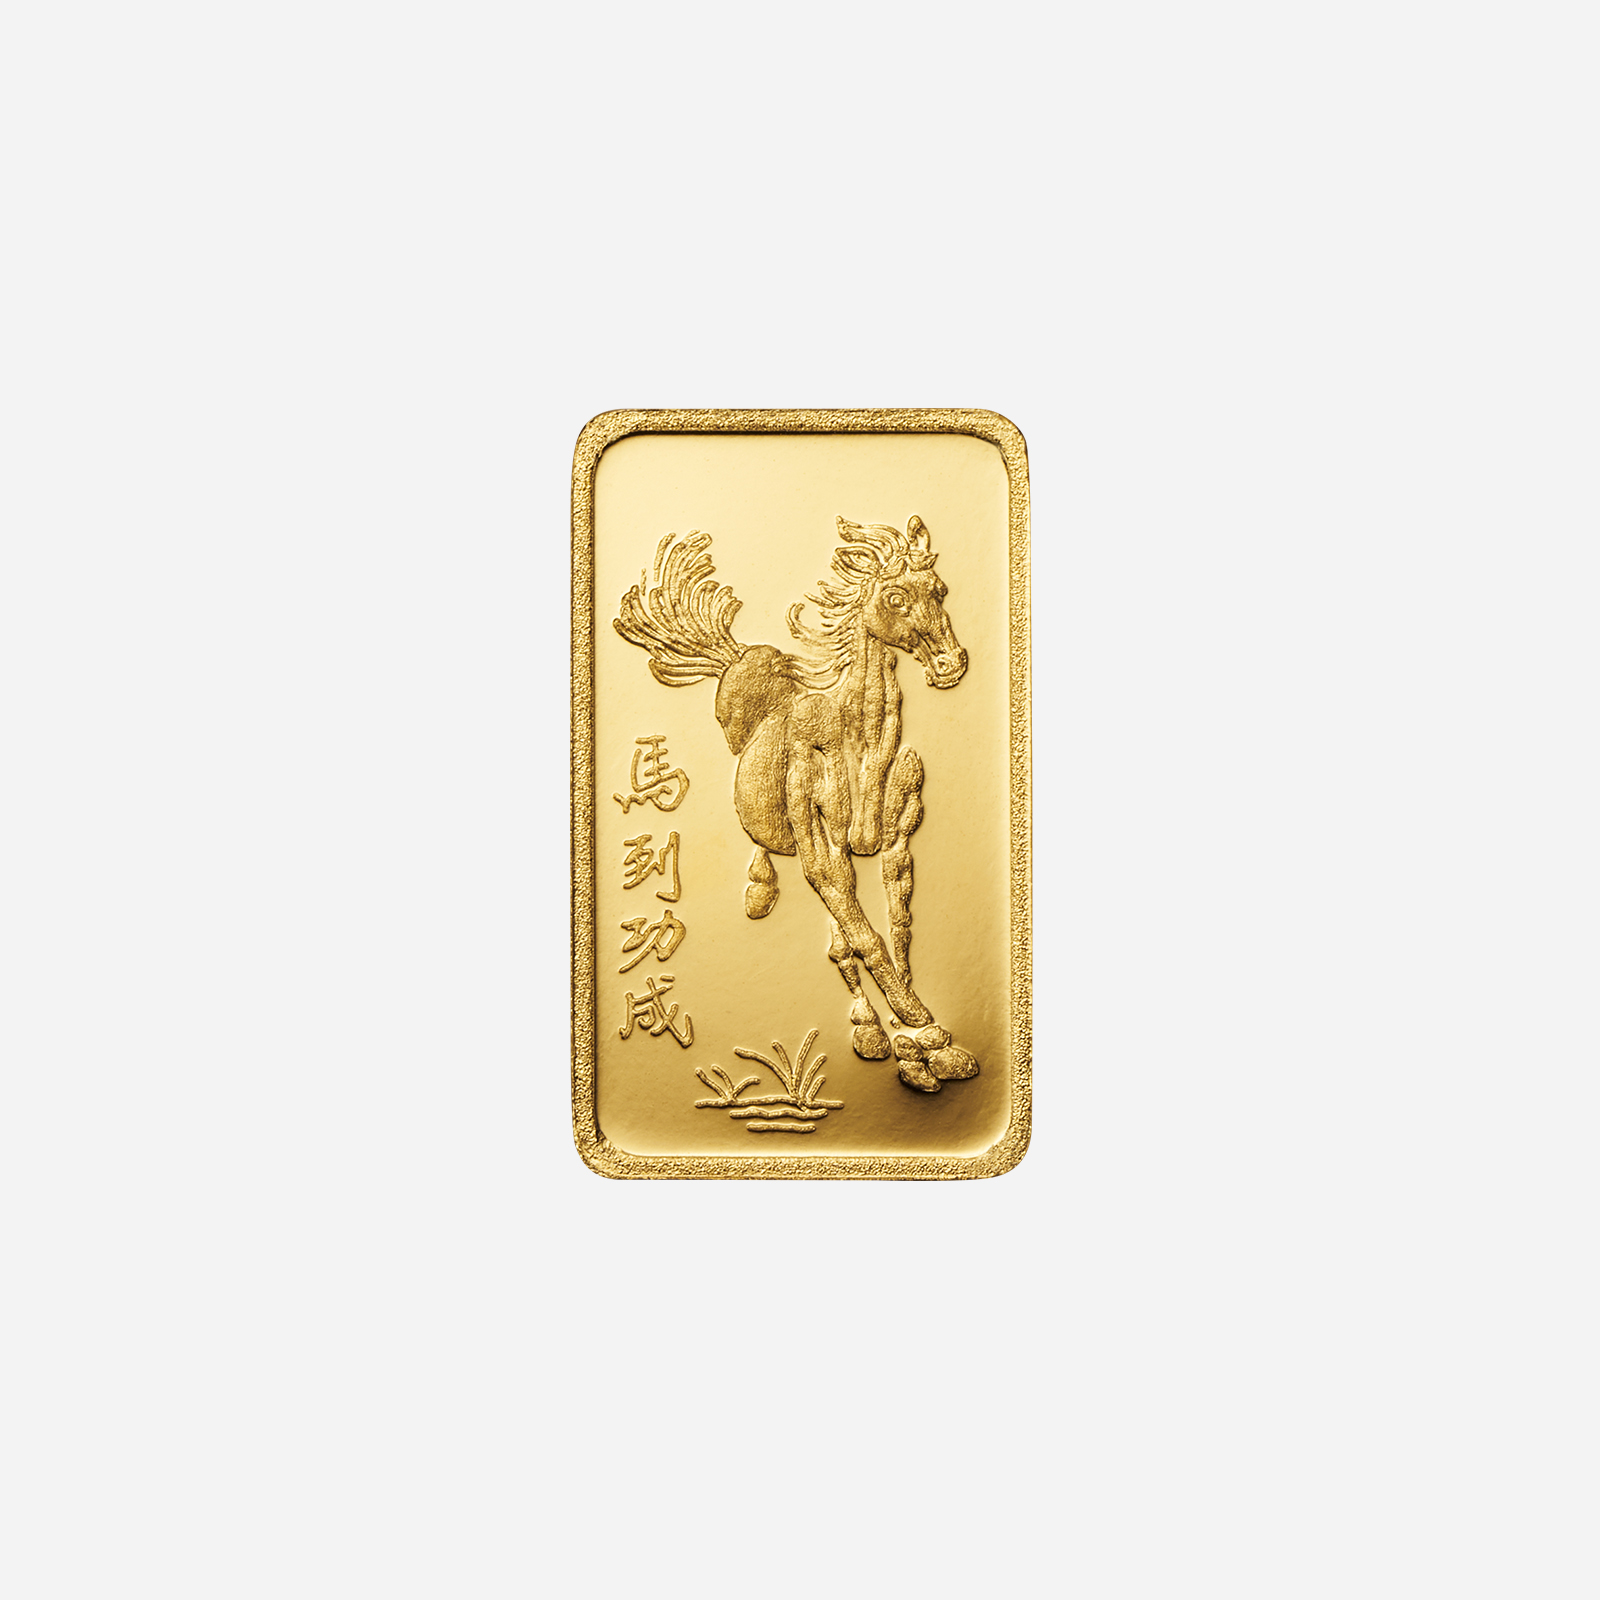 Year Of The Horse 2.5gm Gold Bar